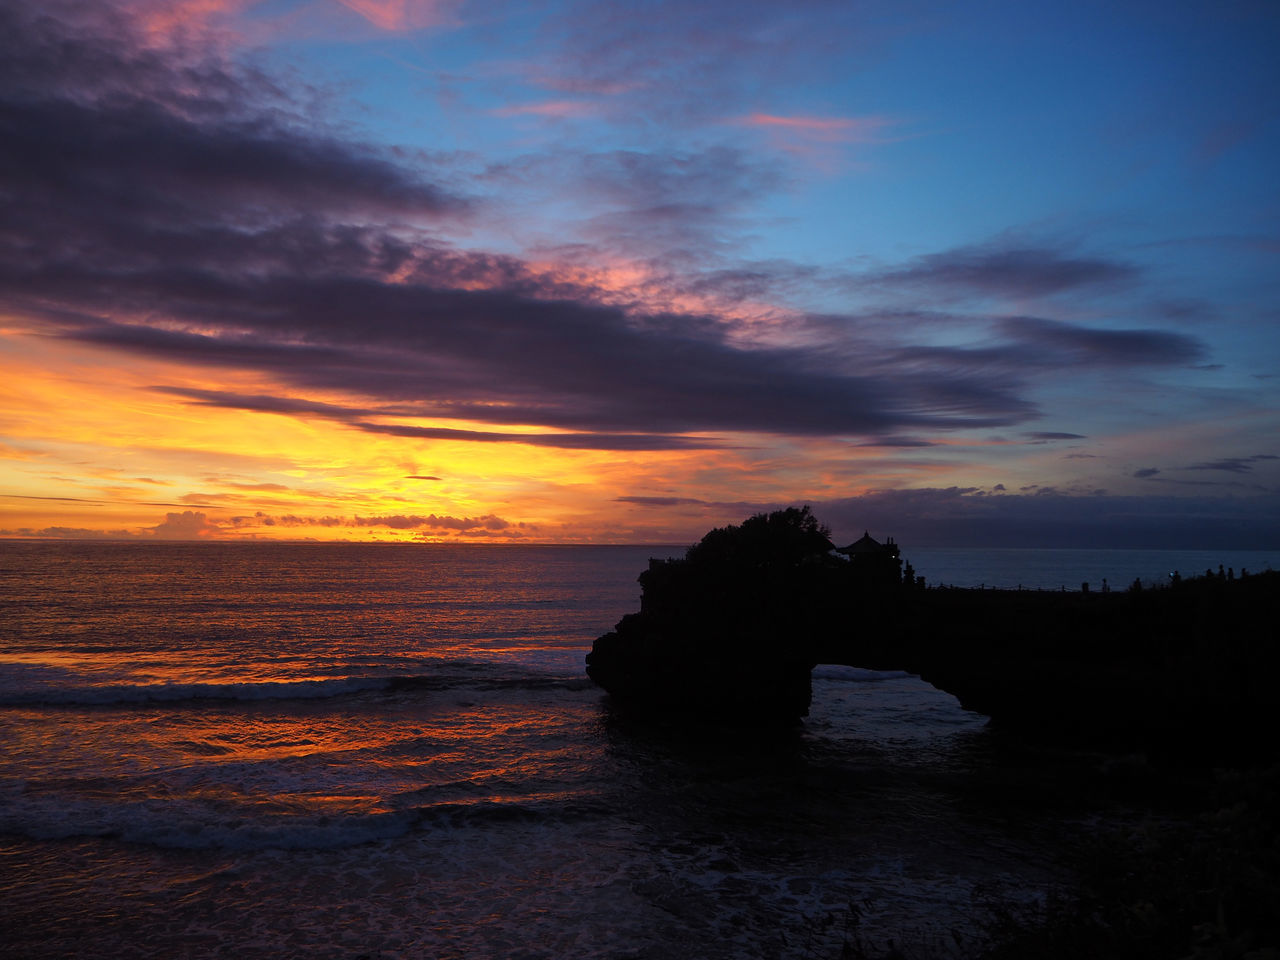 🌊💙 Tanah Lot 💙🌊 Travel Sunset Beach Bali Bali, Indonesia Beauty In Nature Cloud - Sky Dramatic Sky Exceptional Photographs Multi Colored Nature Outdoors Scenics Sea Idylic Tadaa Community Tranquility Water Reflections Wave Life Is A Beach Landscapes Capturing Freedom Travel Destinations Capture The Moment The Great Outdoors - 2017 EyeEm Awards